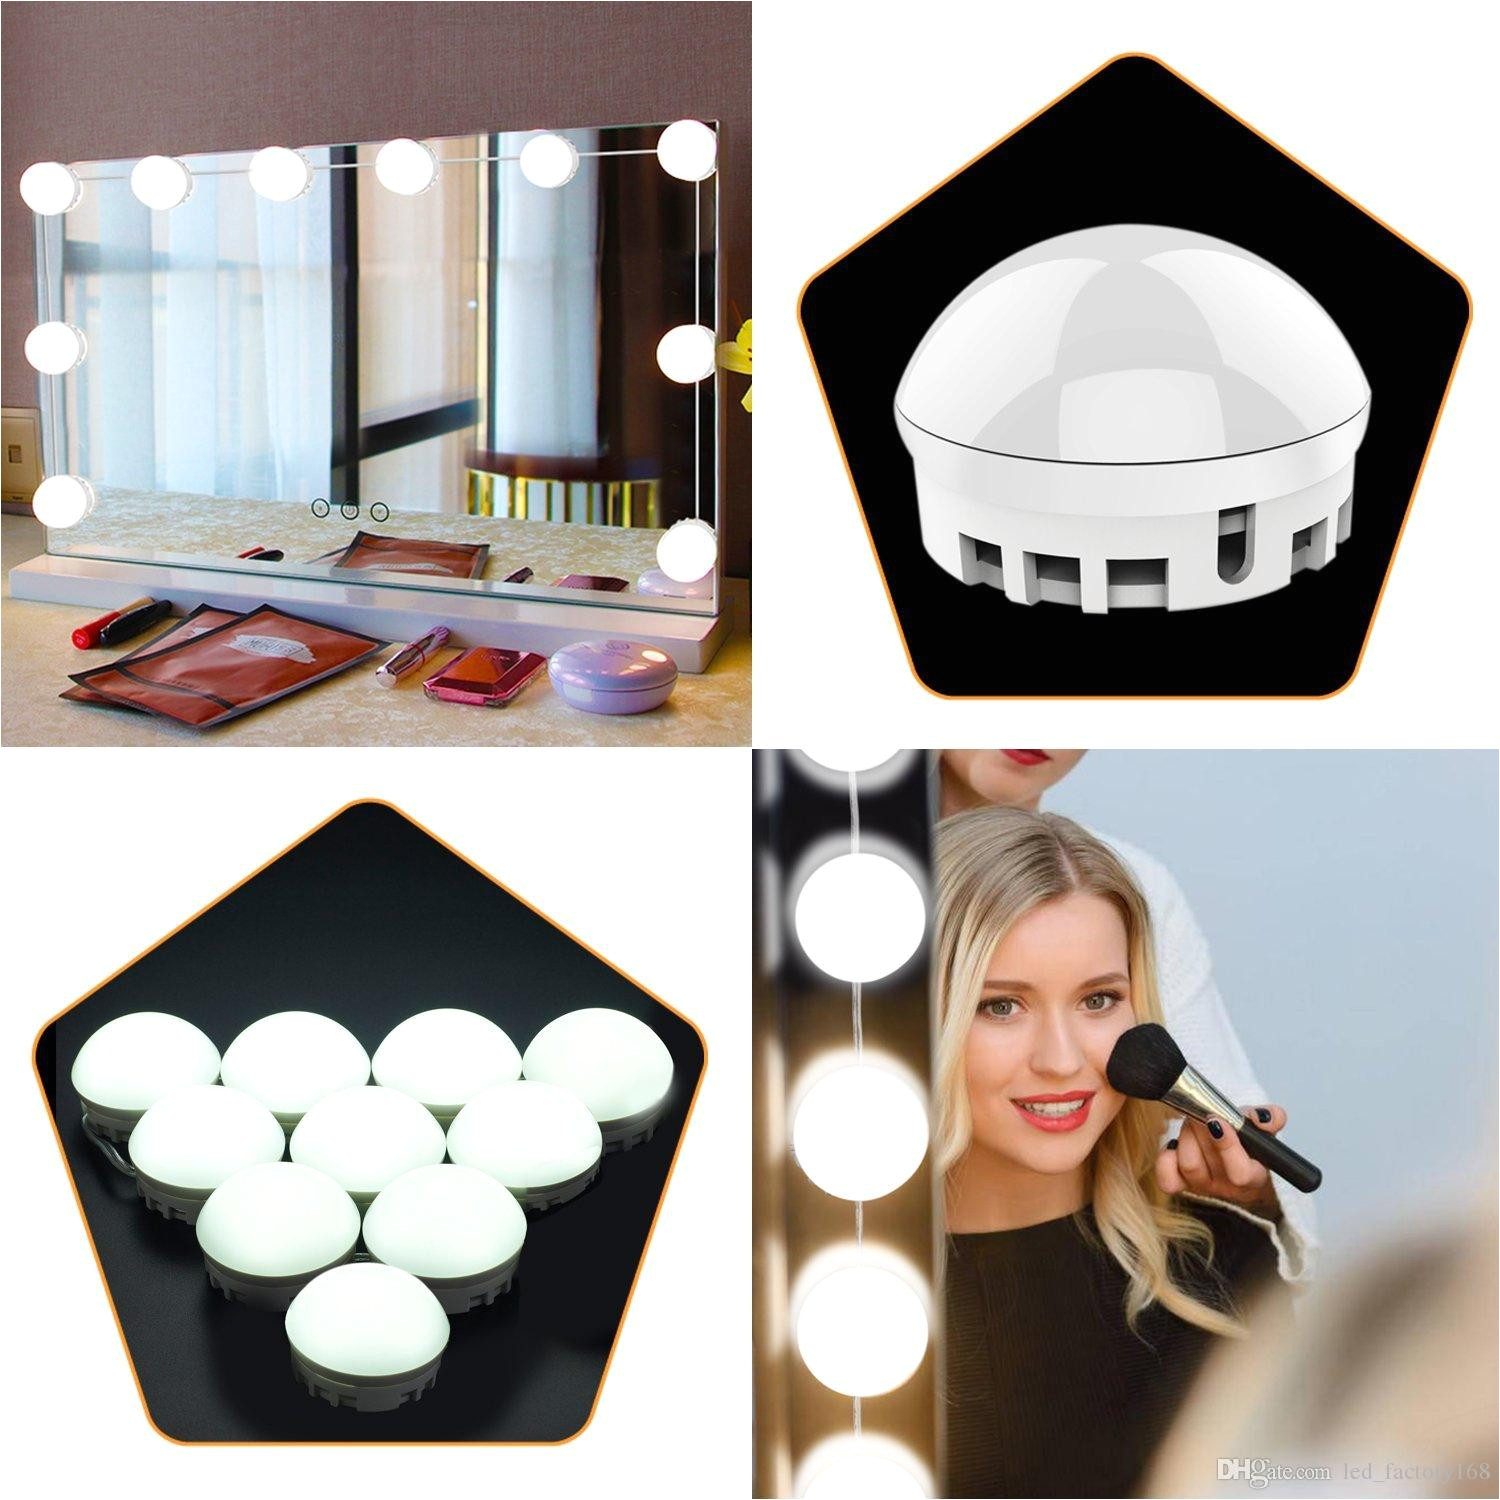 2019 vanity makeup lights hollywood style led vanity mirror lamp kit with usb adapter dimmable light bulbs adjustable brightness for makeup dress from